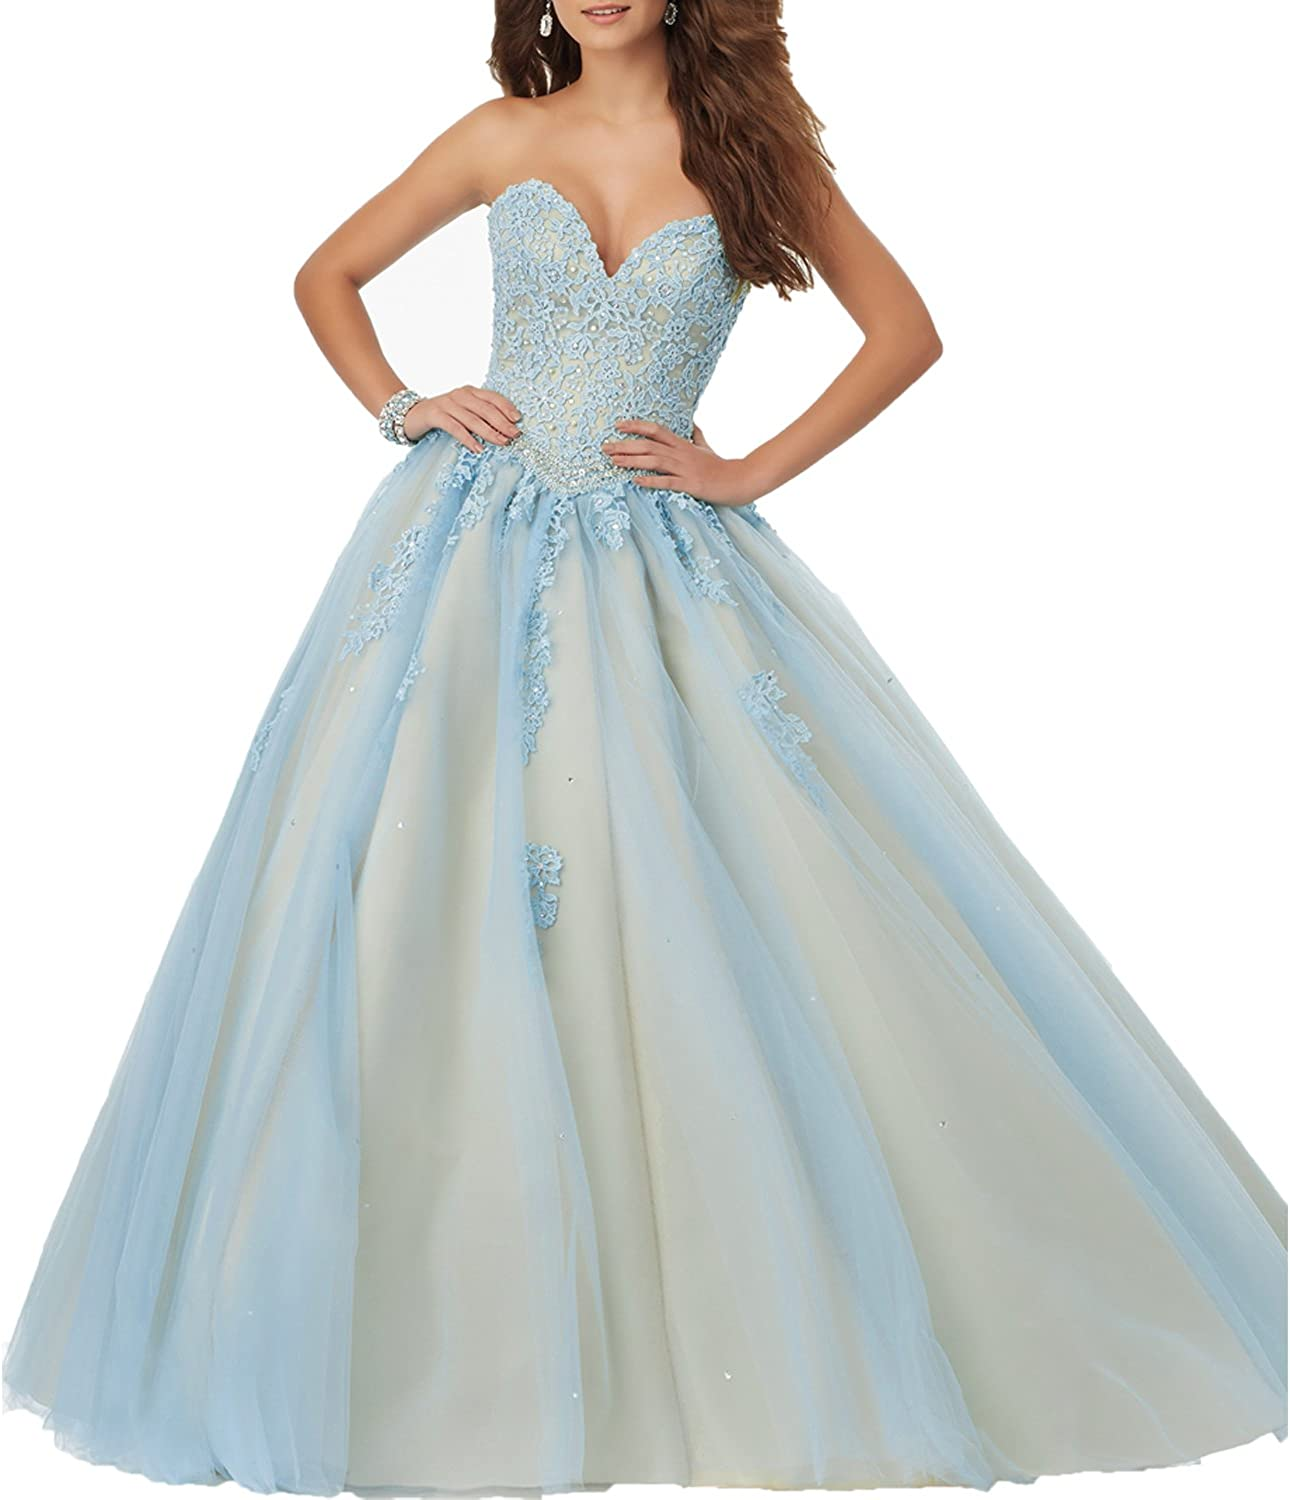 Beauty Bridal Sweetheart Beaded Lace UP Prom Ball Gown Quinceanera Dress